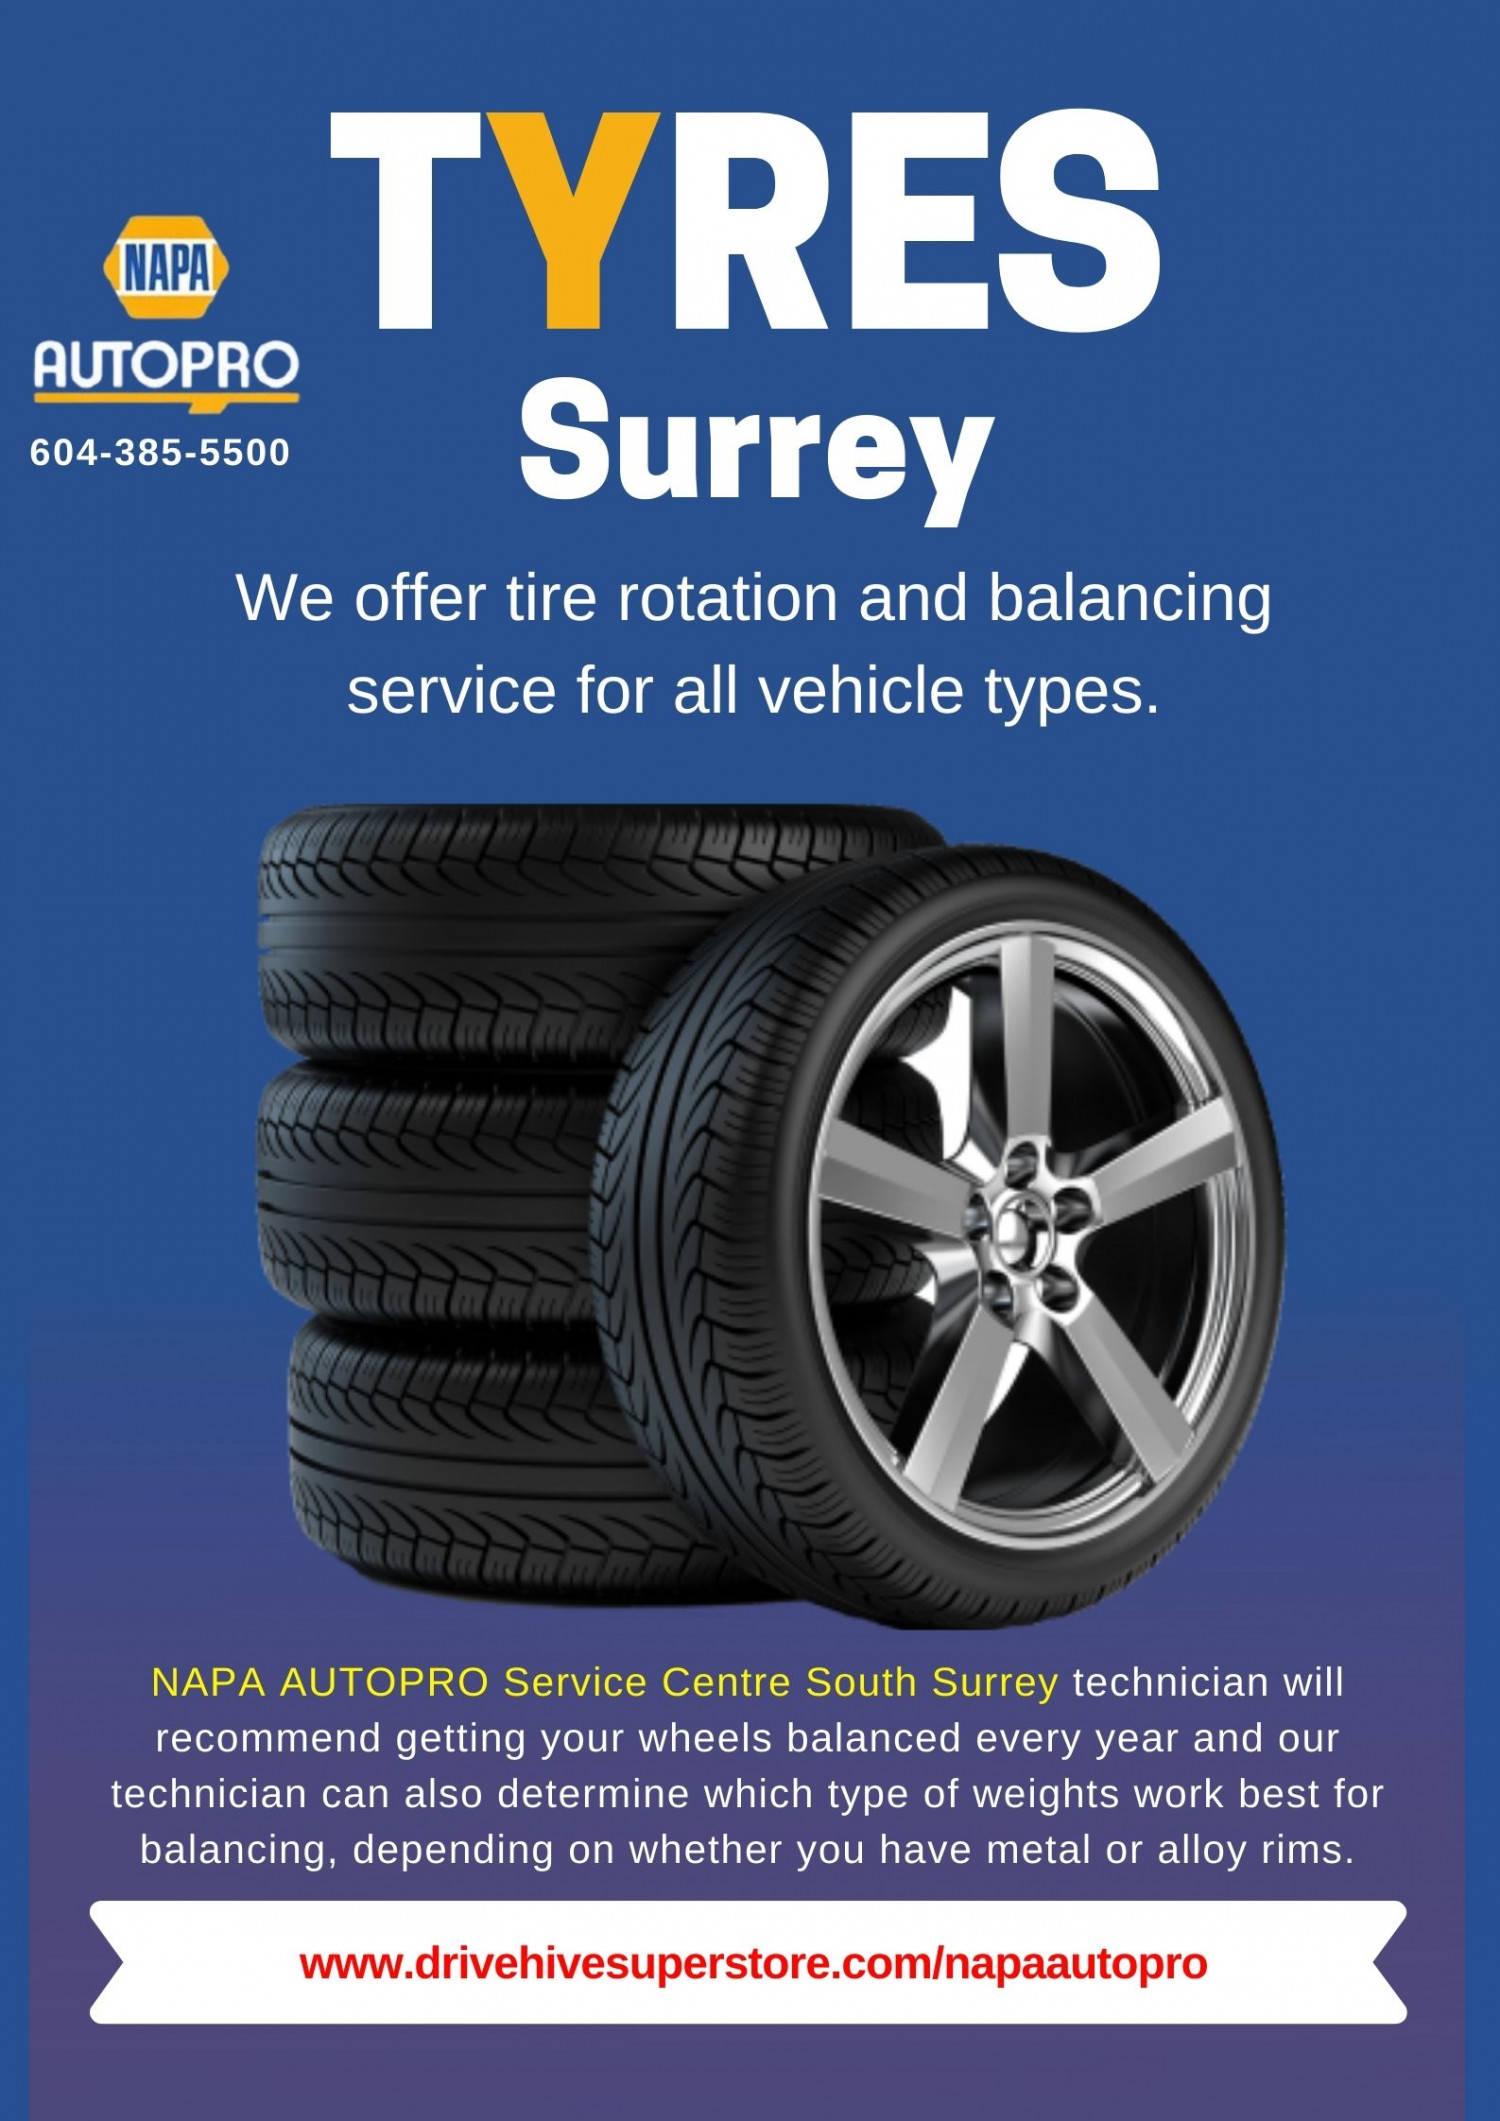 Best Automotive Shop for Tire Rotation and Wheel Balancing  Infographic